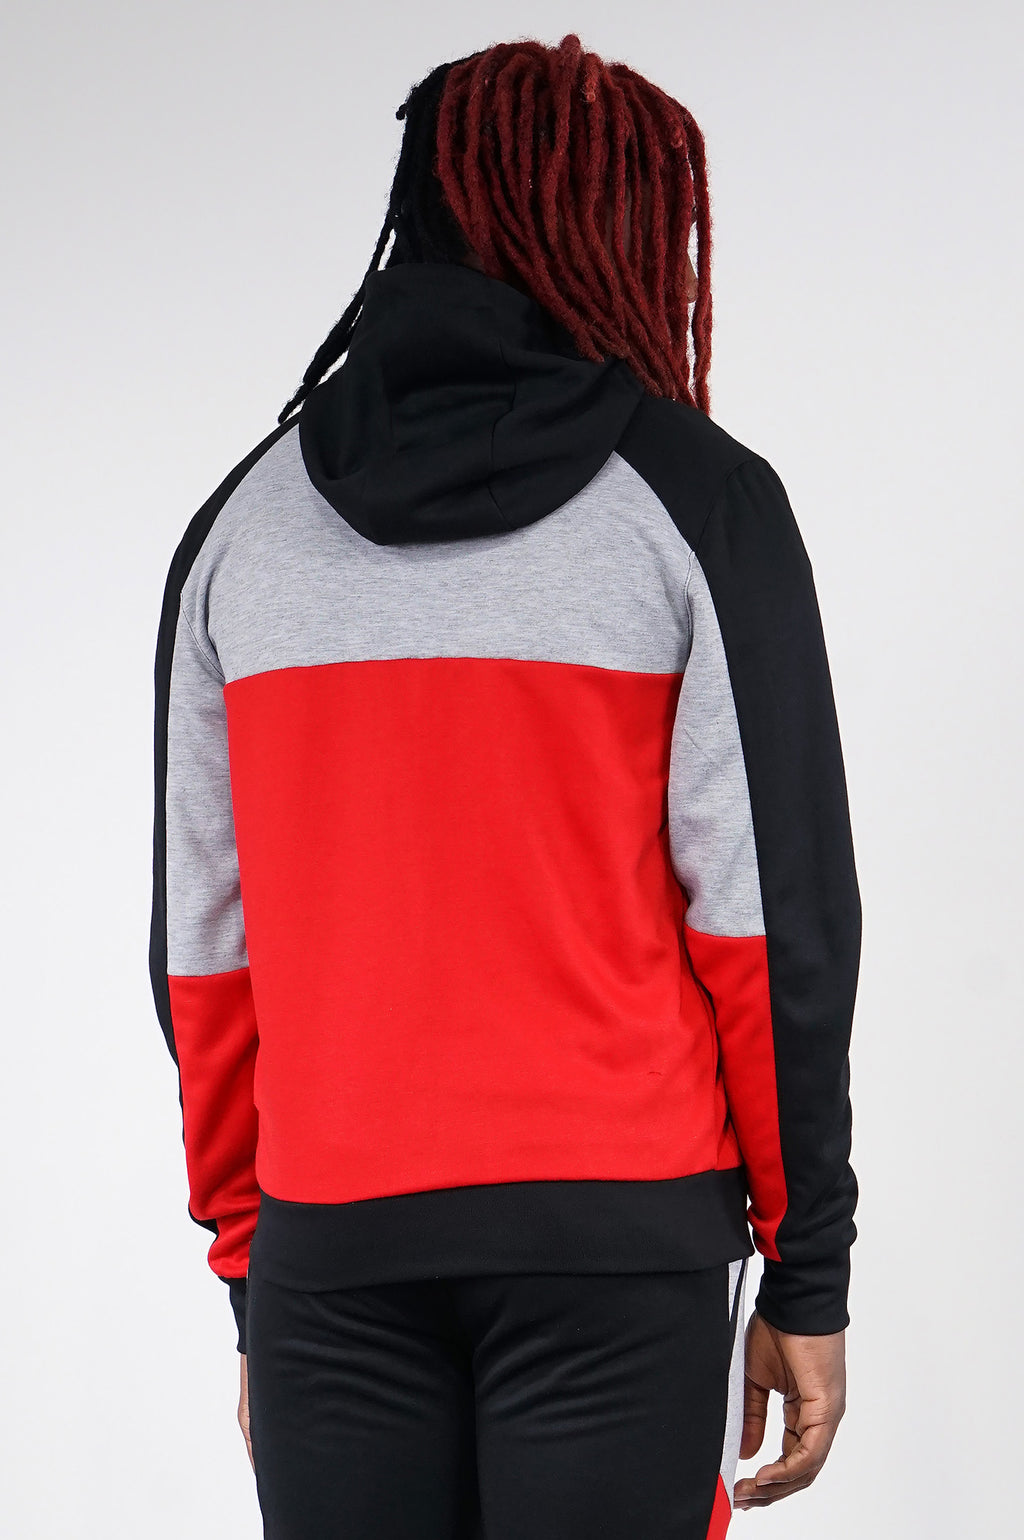 AAO FASHION MENS COLOR BLOCK TECH FLEECE ZIPUP HOODIE